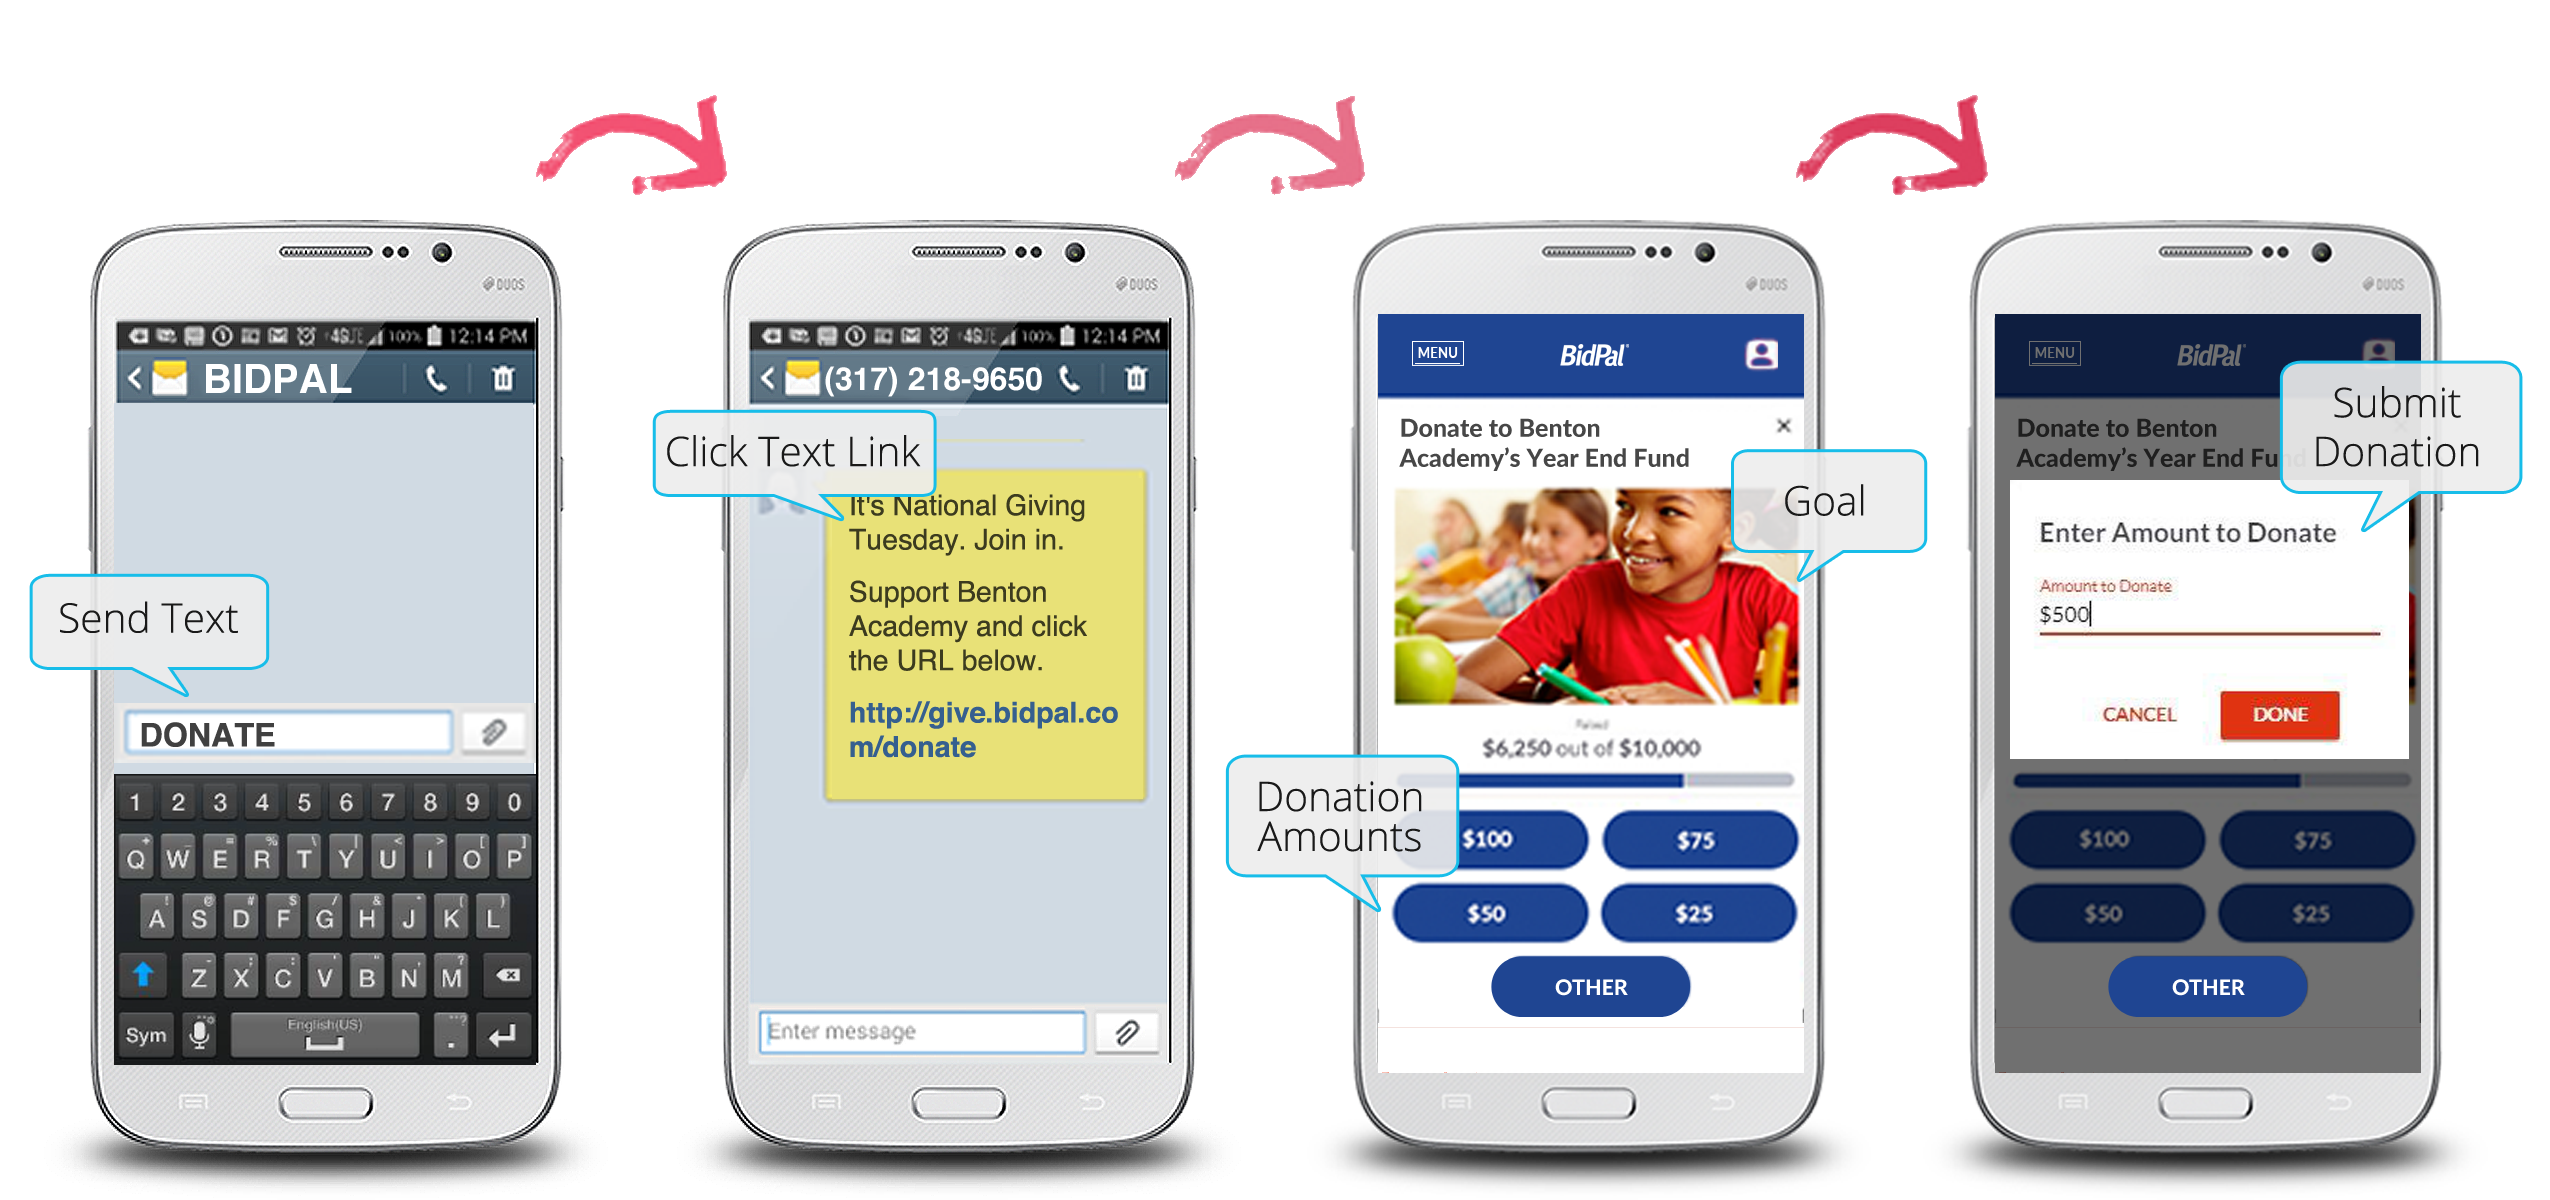 Use Mobile Donations on GivingTuesday